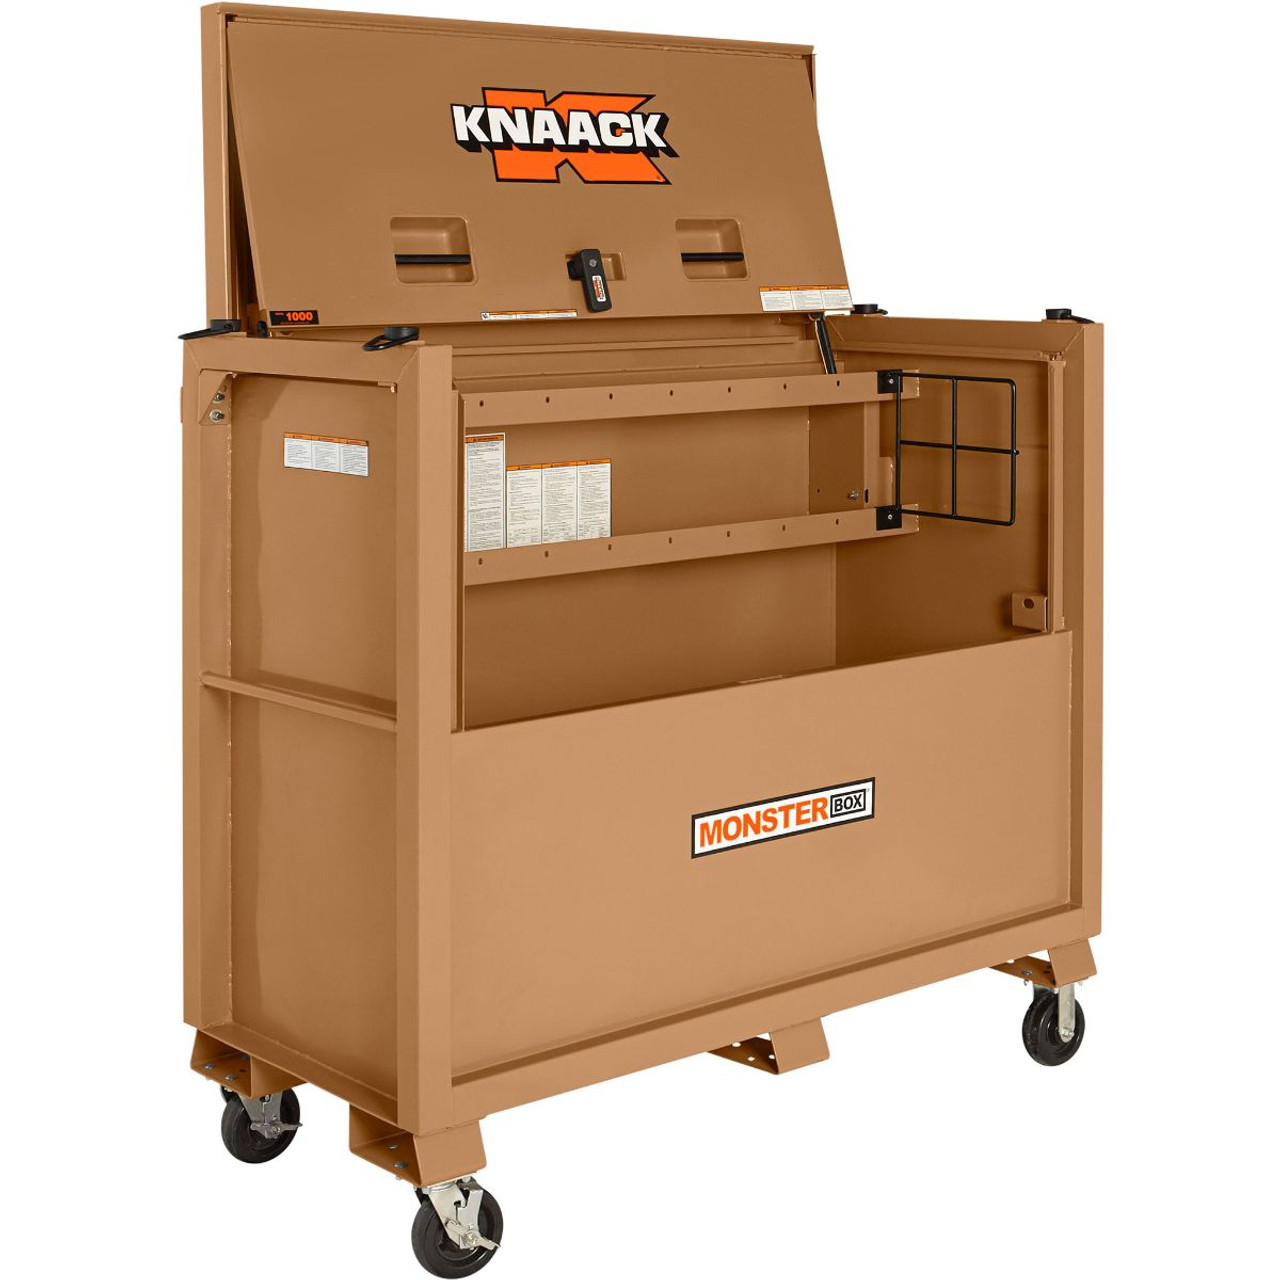 small resolution of knaack model 1000 monster piano box industrial ladder supply co inc